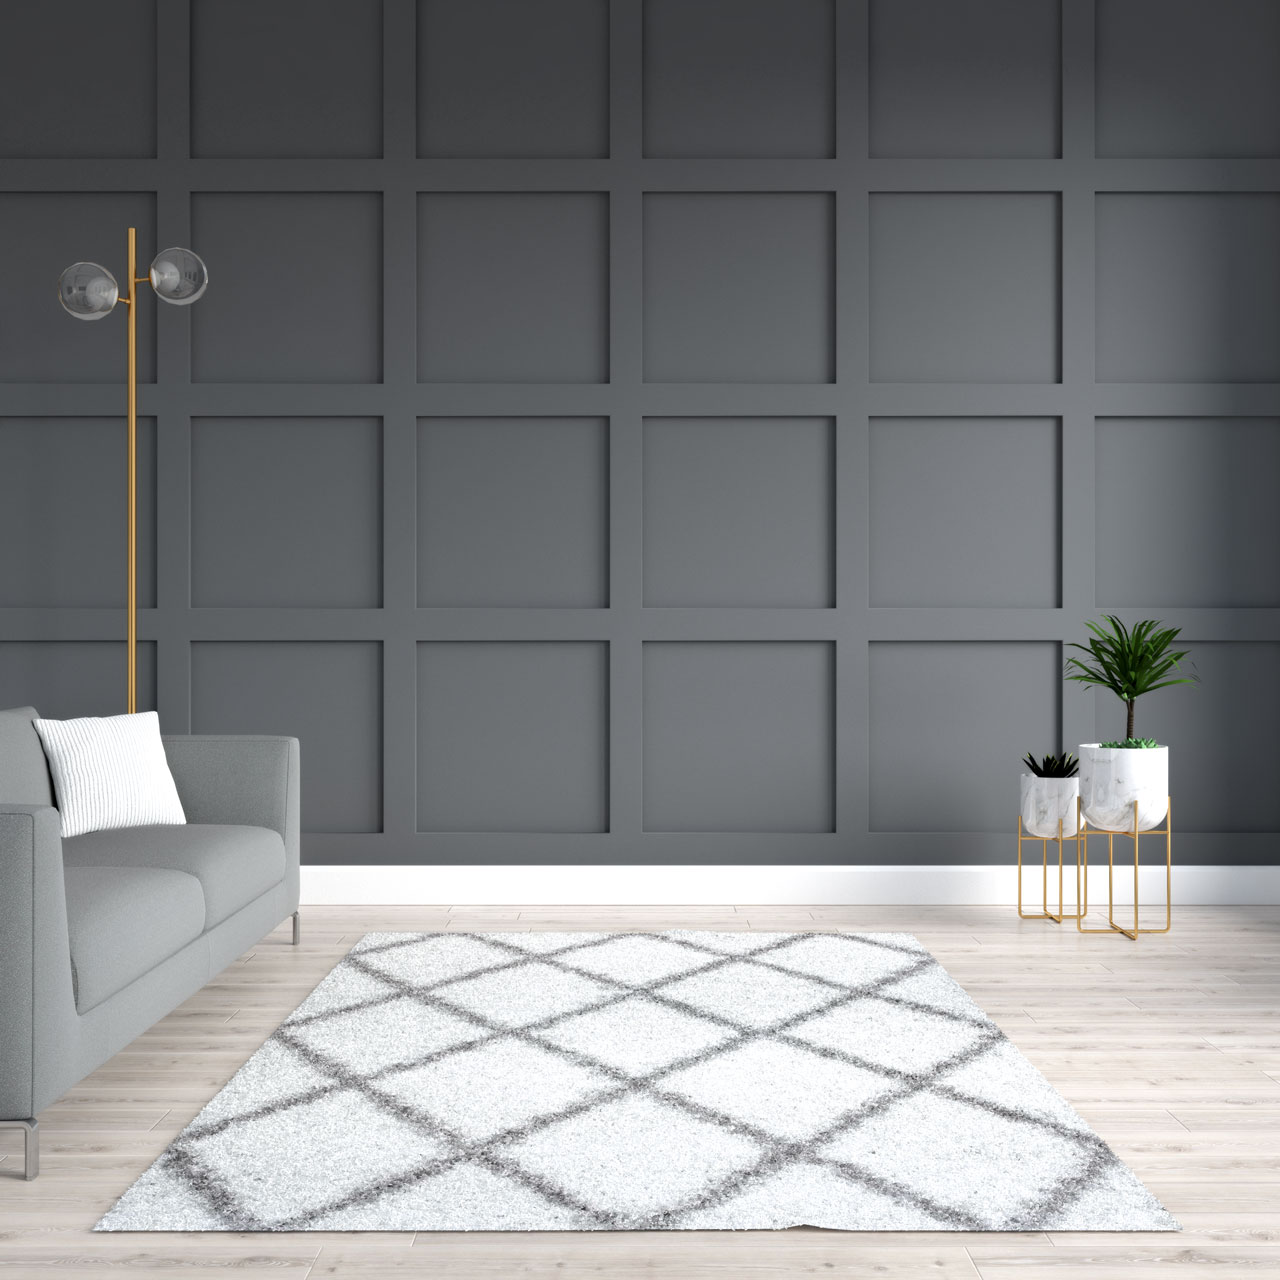 Gray wall with white area rug